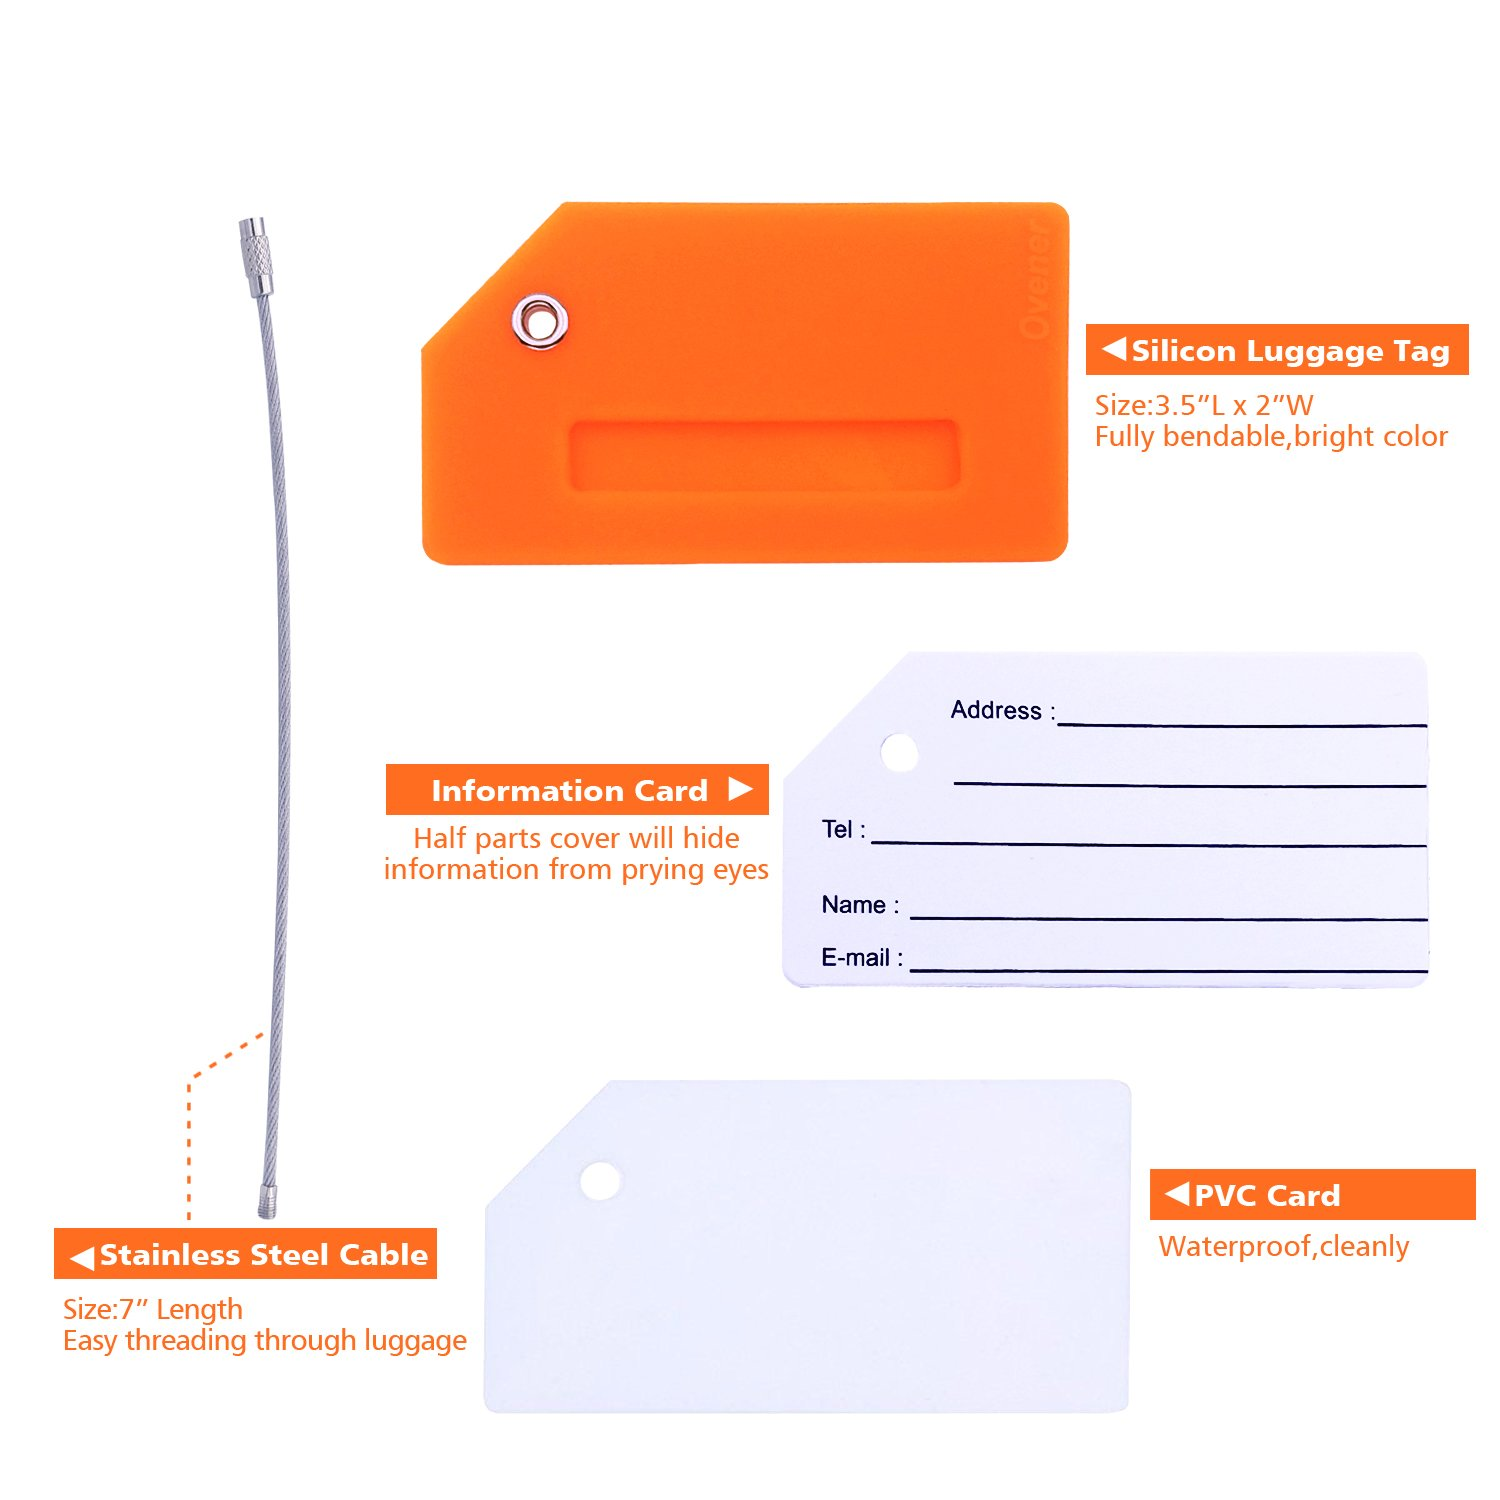 Silicone Luggage Tag With Name ID Card Perfect to Quickly Spot Luggage Suitcase (Plane 2Pcs Orange) by Ovener (Image #2)